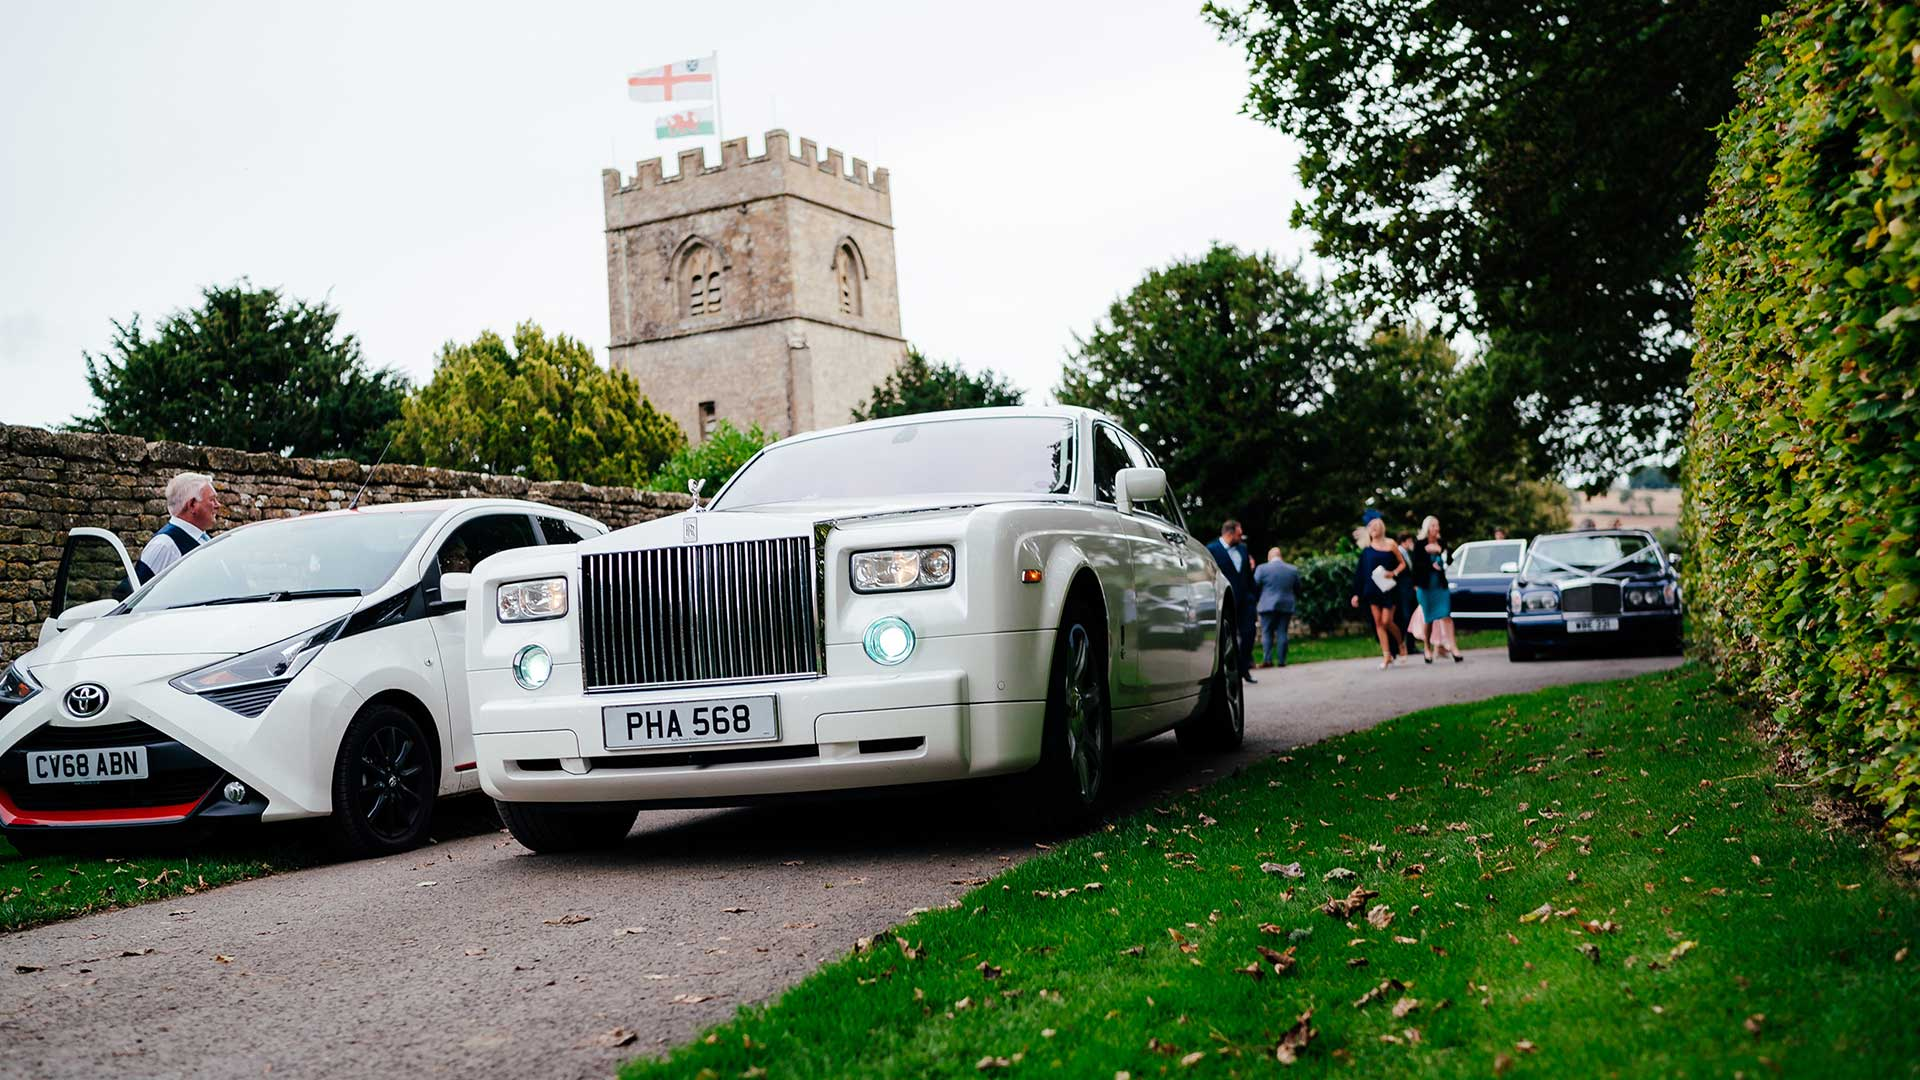 Rolls-Royce Phantom arriving at the church with the Bentley Arnage following